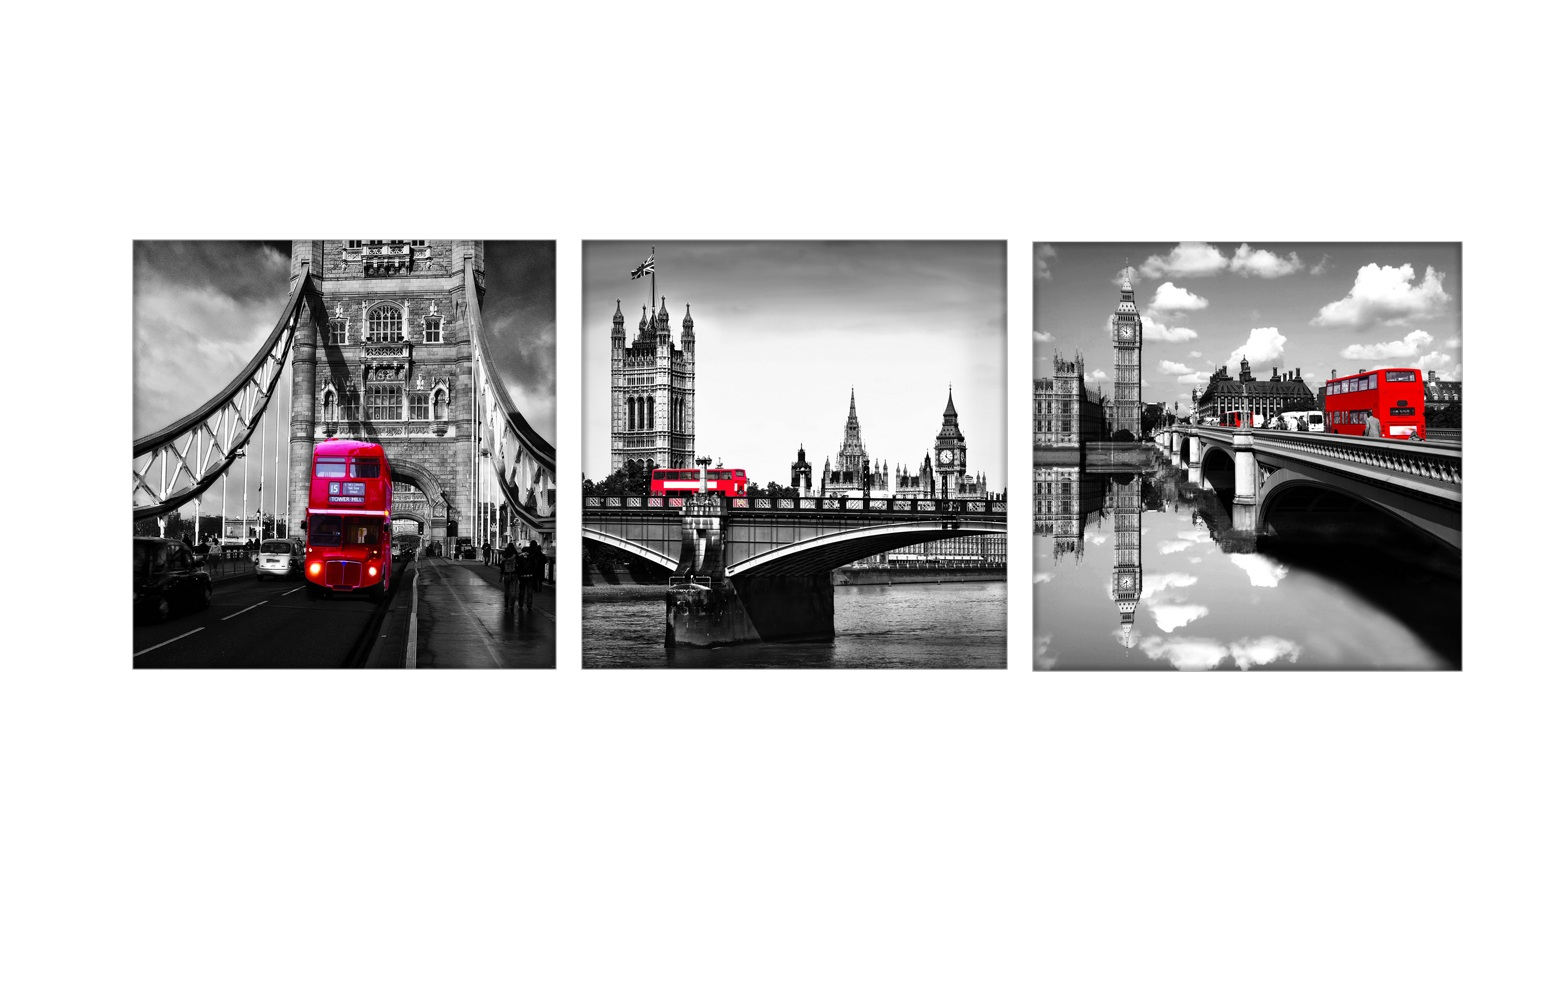 3 Piece Black White London Bridge Red Bus Painting Canvas Wall Art with Stretched Frame Ready to hang